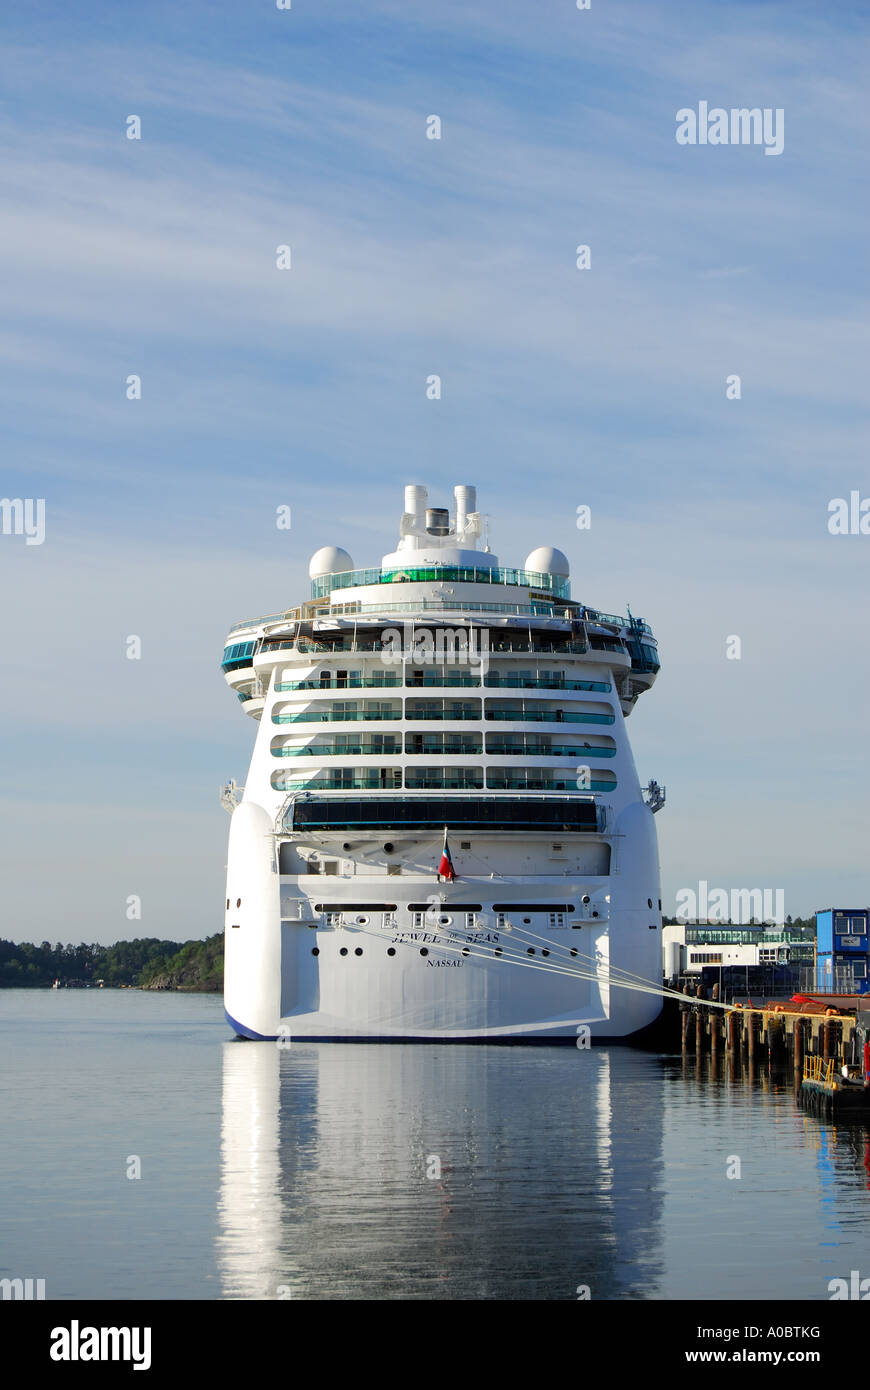 The cruise ship Jewel of the Seas docked in the harbour of Oslo in Norway - Stock Image